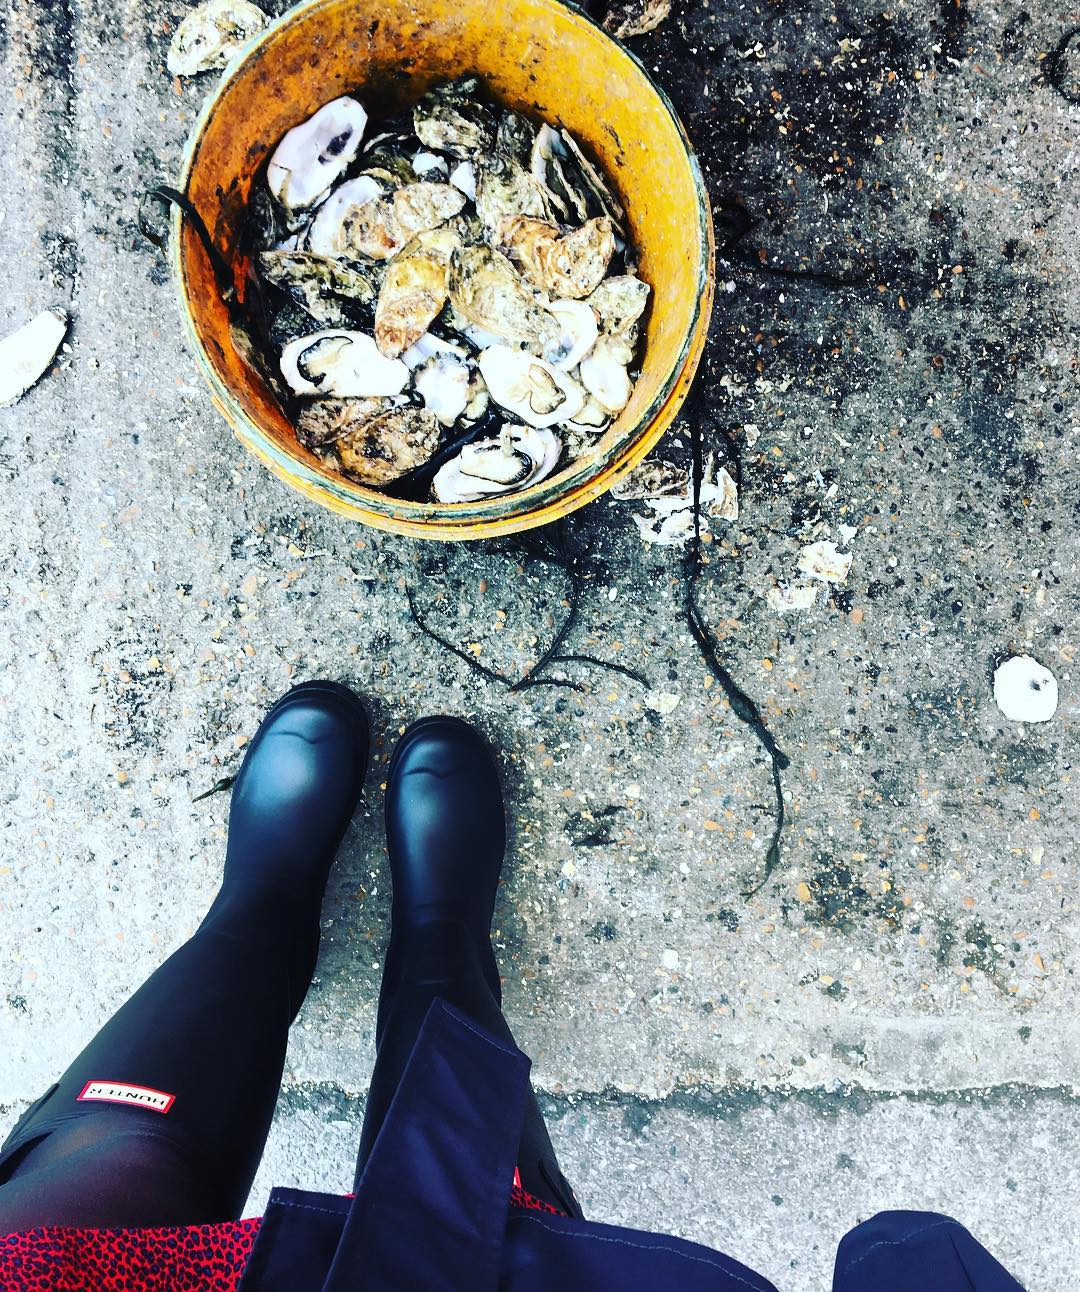 Best Places to Visit in England - Bucket of oysters caught in Whitstable